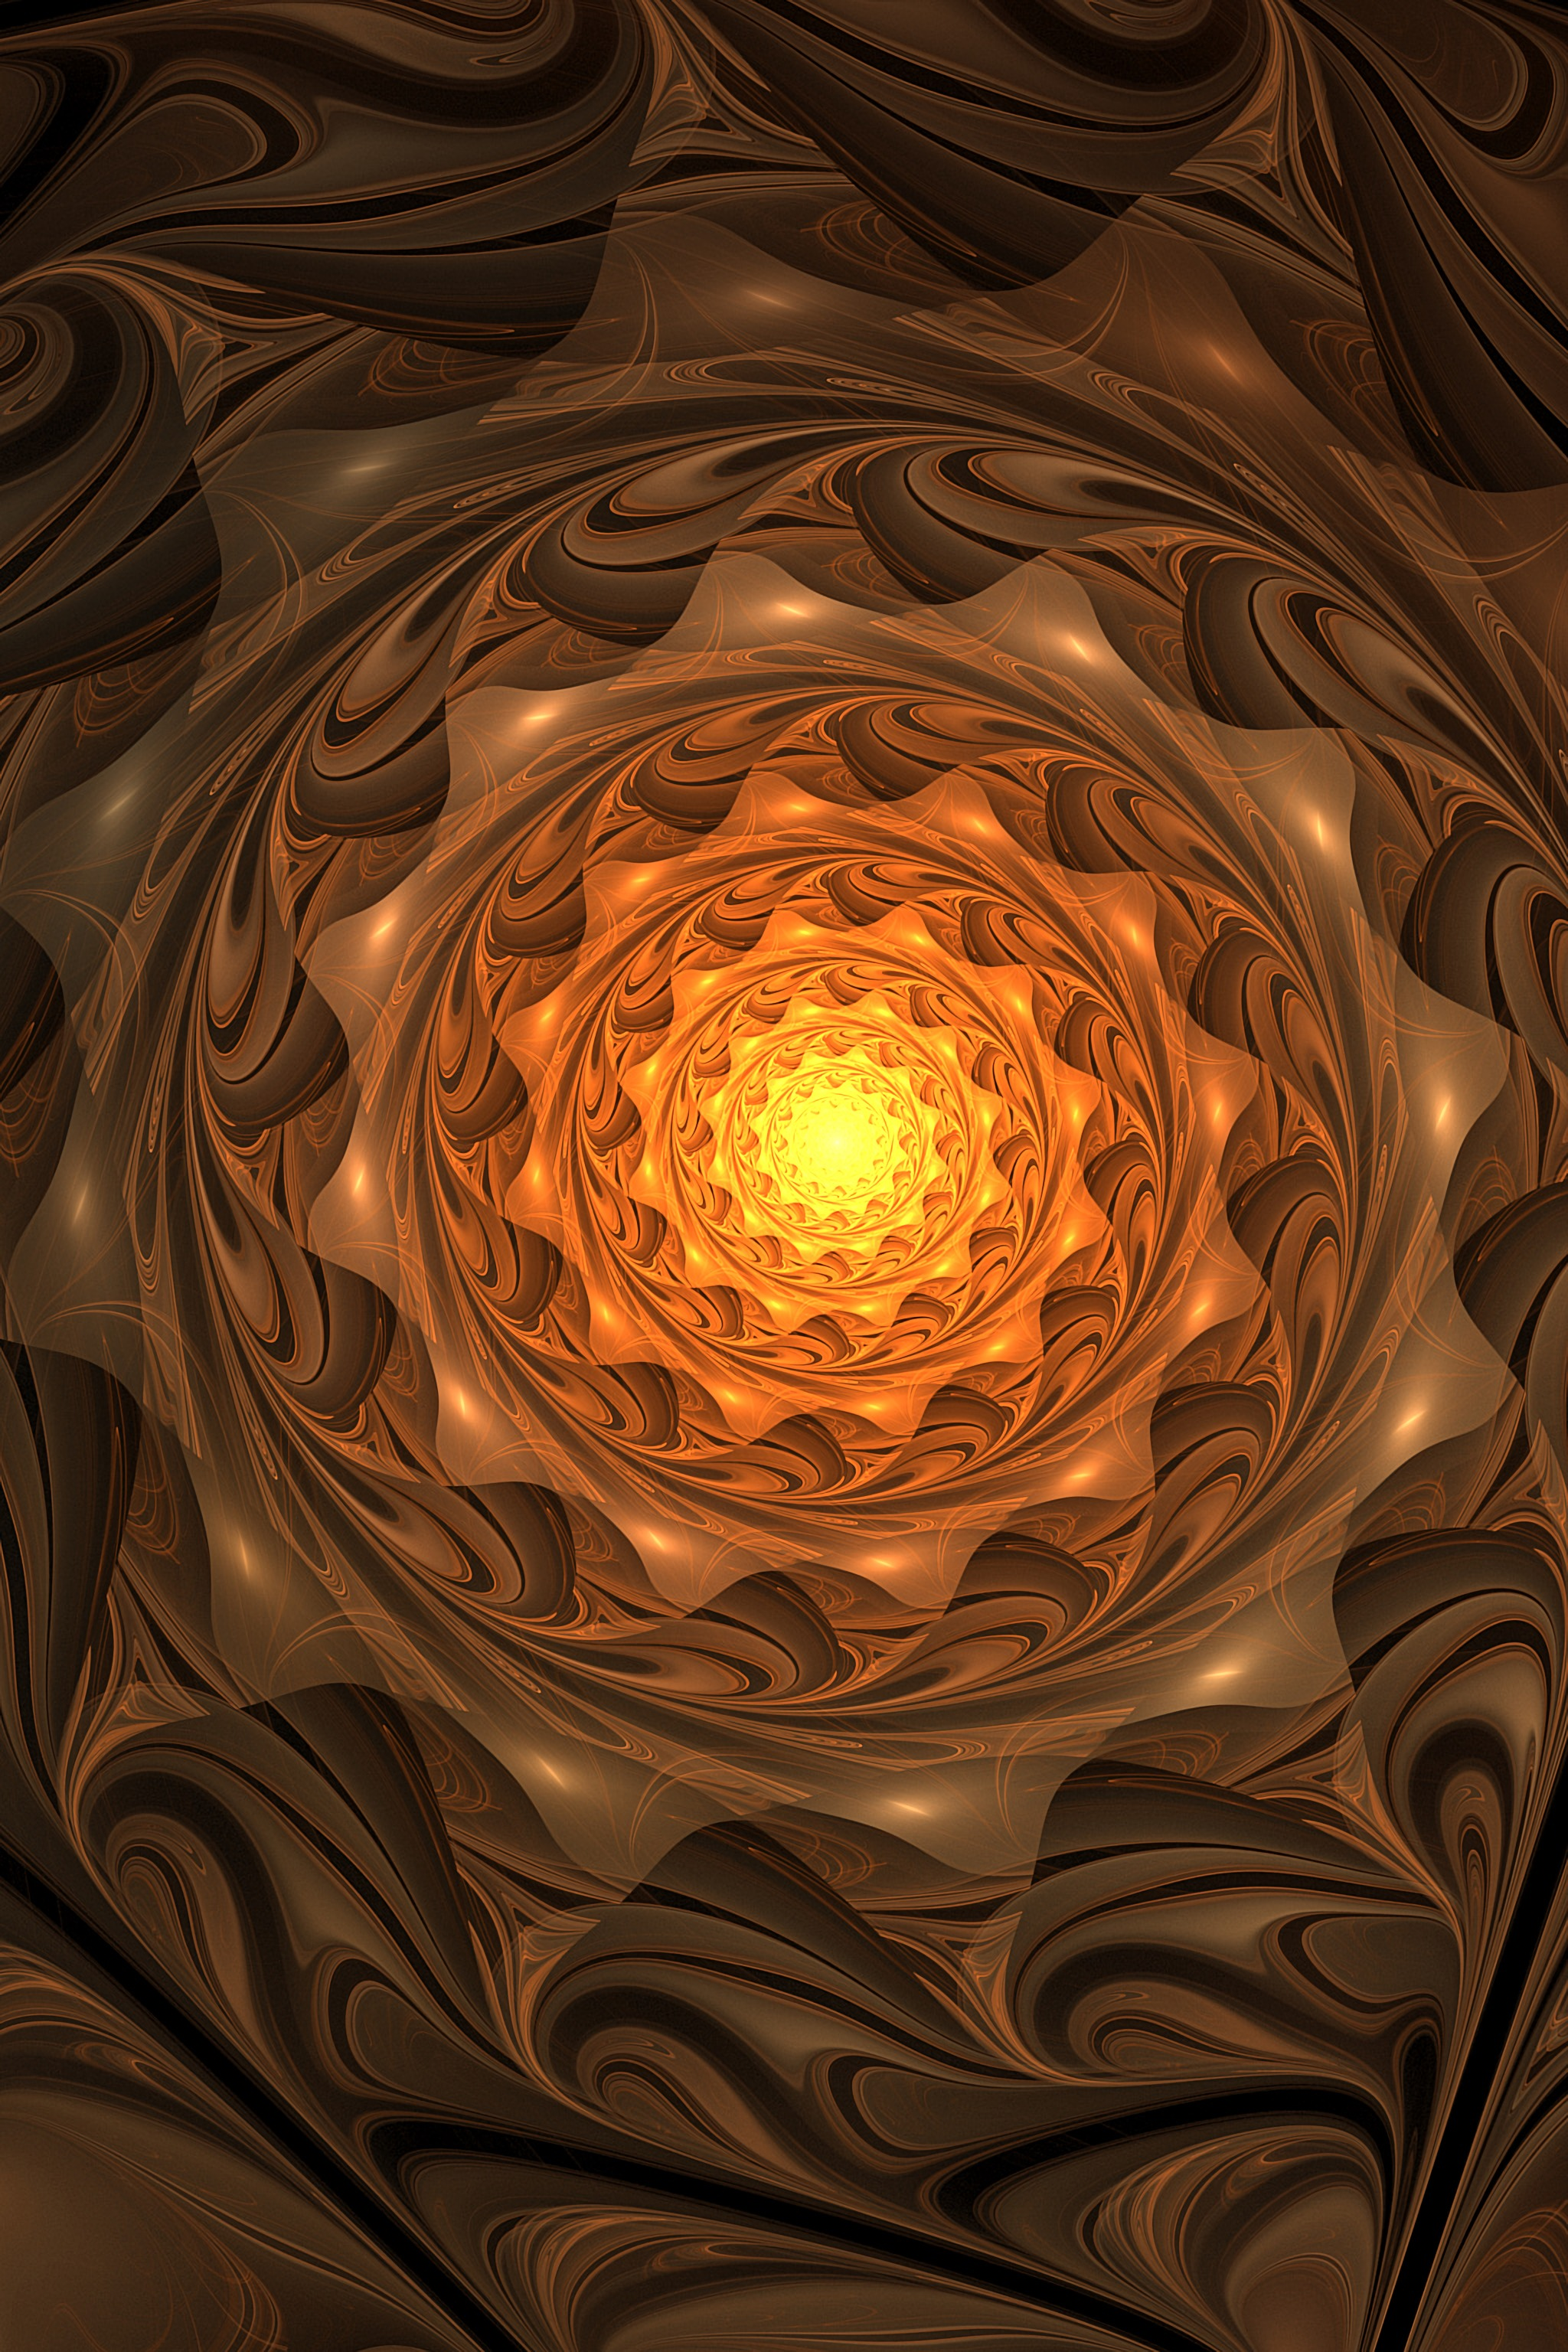 63614 Screensavers and Wallpapers Swirling for phone. Download Abstract, Fractal, Glow, Spiral, Swirling, Involute pictures for free